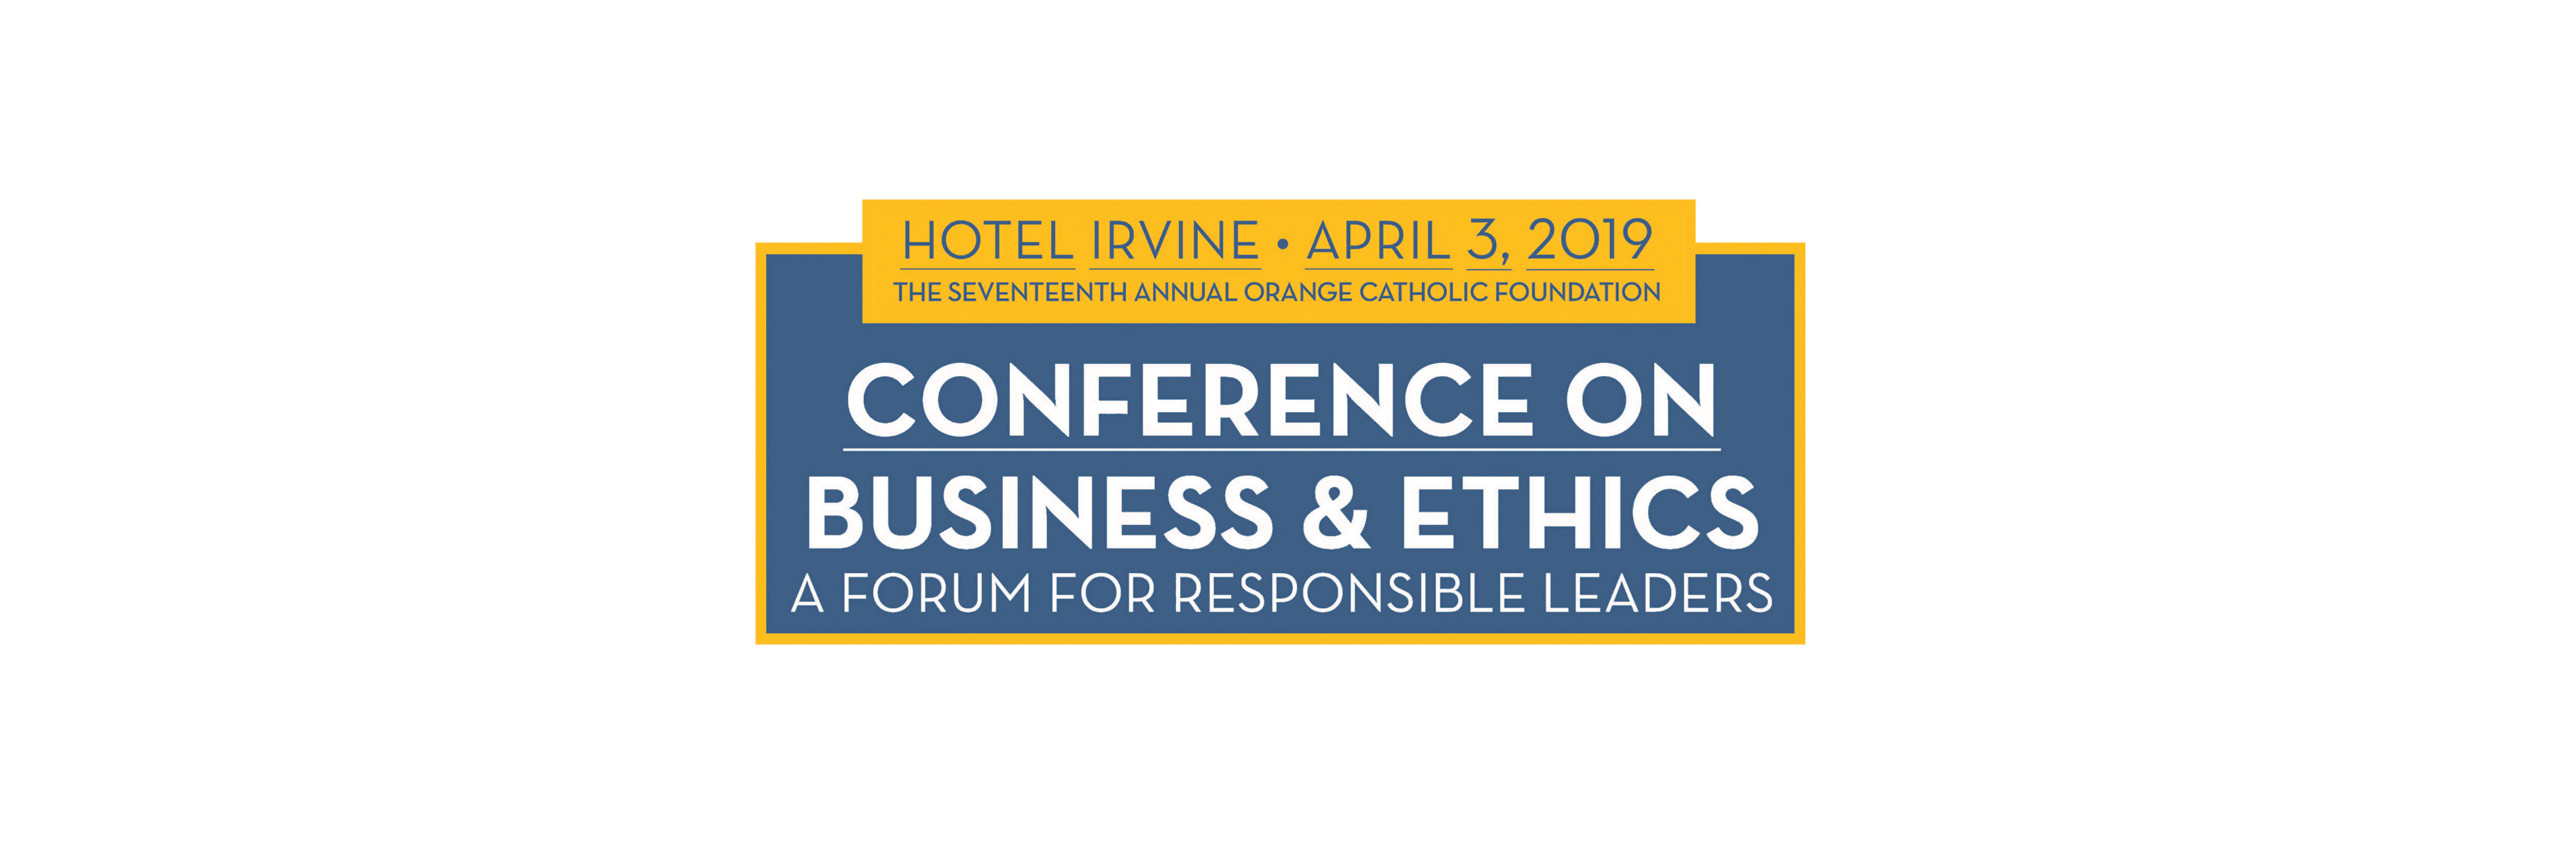 2017 Conference on Business & Ethics